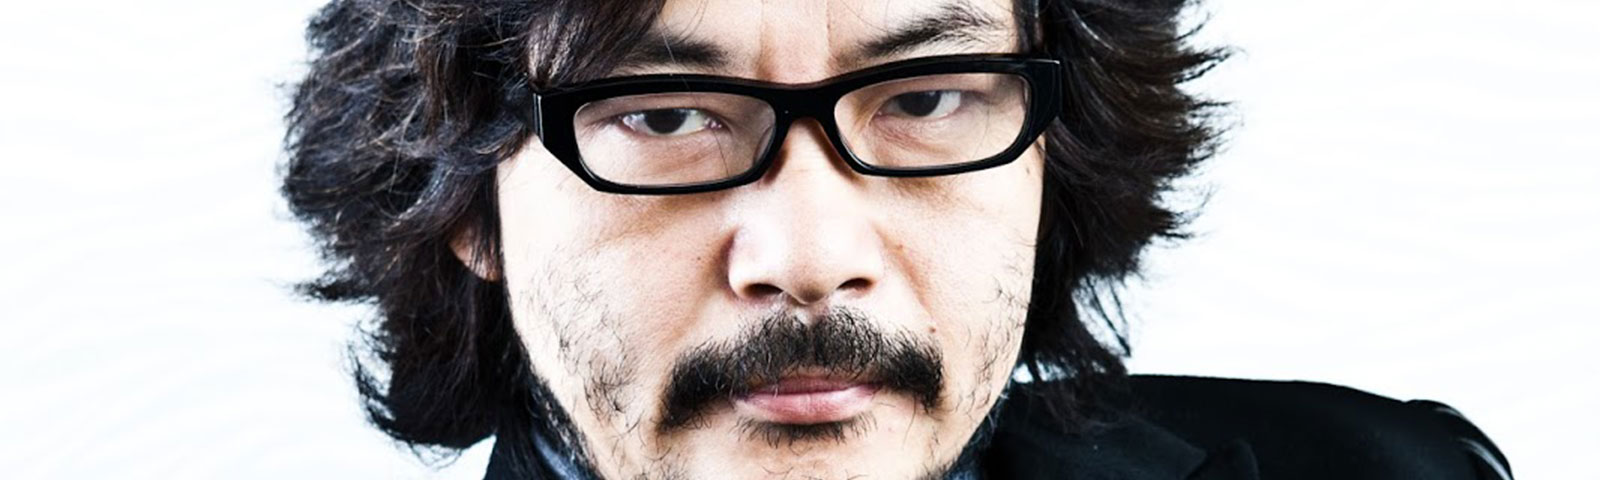 sion sono wikipediasion sono imdb, sion sono himizu, sion sono interview, sion sono twitter, sion sono documentary, sion sono quotes, sion sono motors, sion sono rym, sion sono films, sion sono love and peace, sion sono 2016, sion sono tag, sion sono tumblr, sion sono youtube, sion sono, sion sono filmografia, sion sono best movies, sion sono wikipedia, sion sono love exposure, sion sono guilty of romance